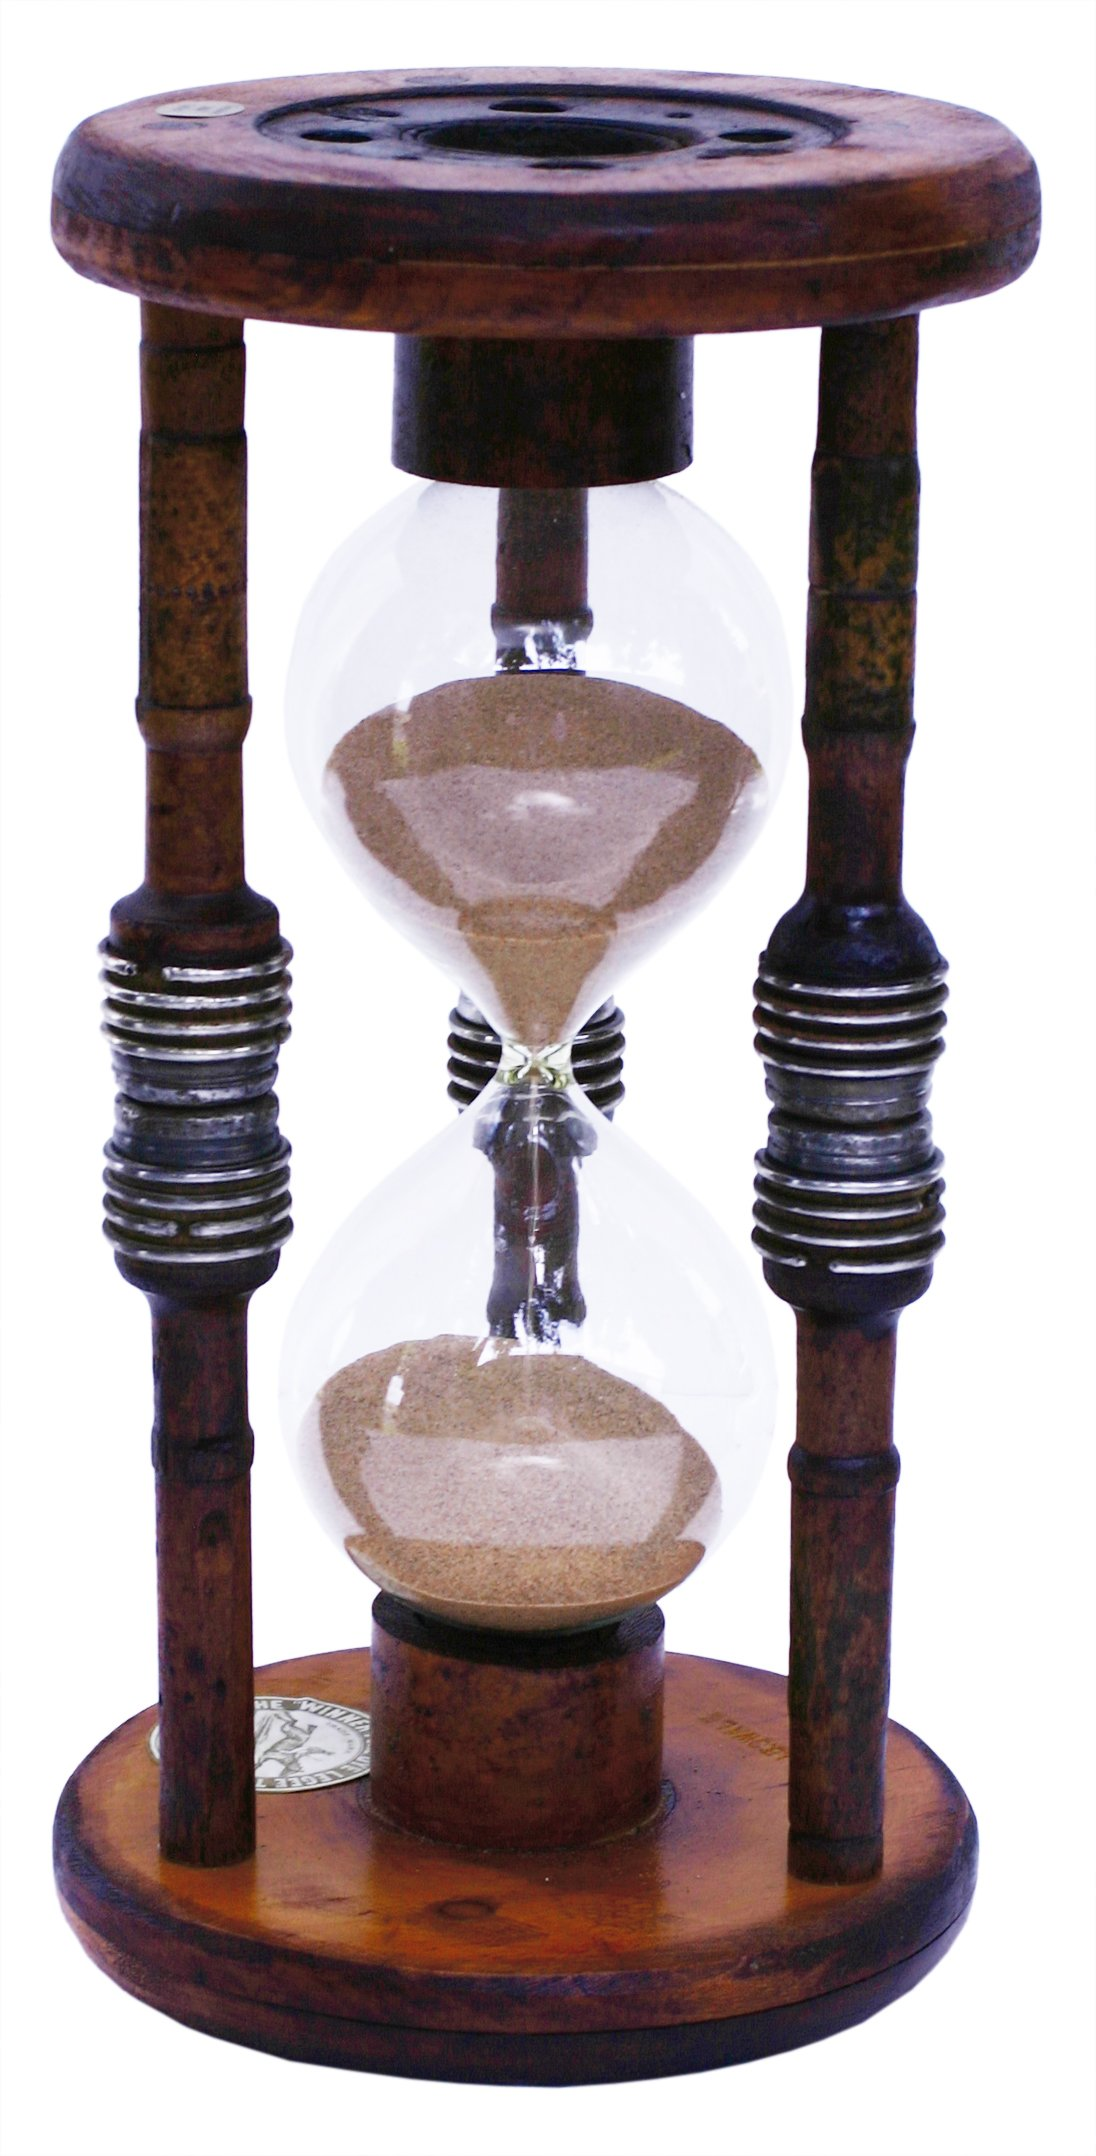 River City Clocks 60 Minute Antique Wood Hourglass Sand Timer, 12-Inch Tall